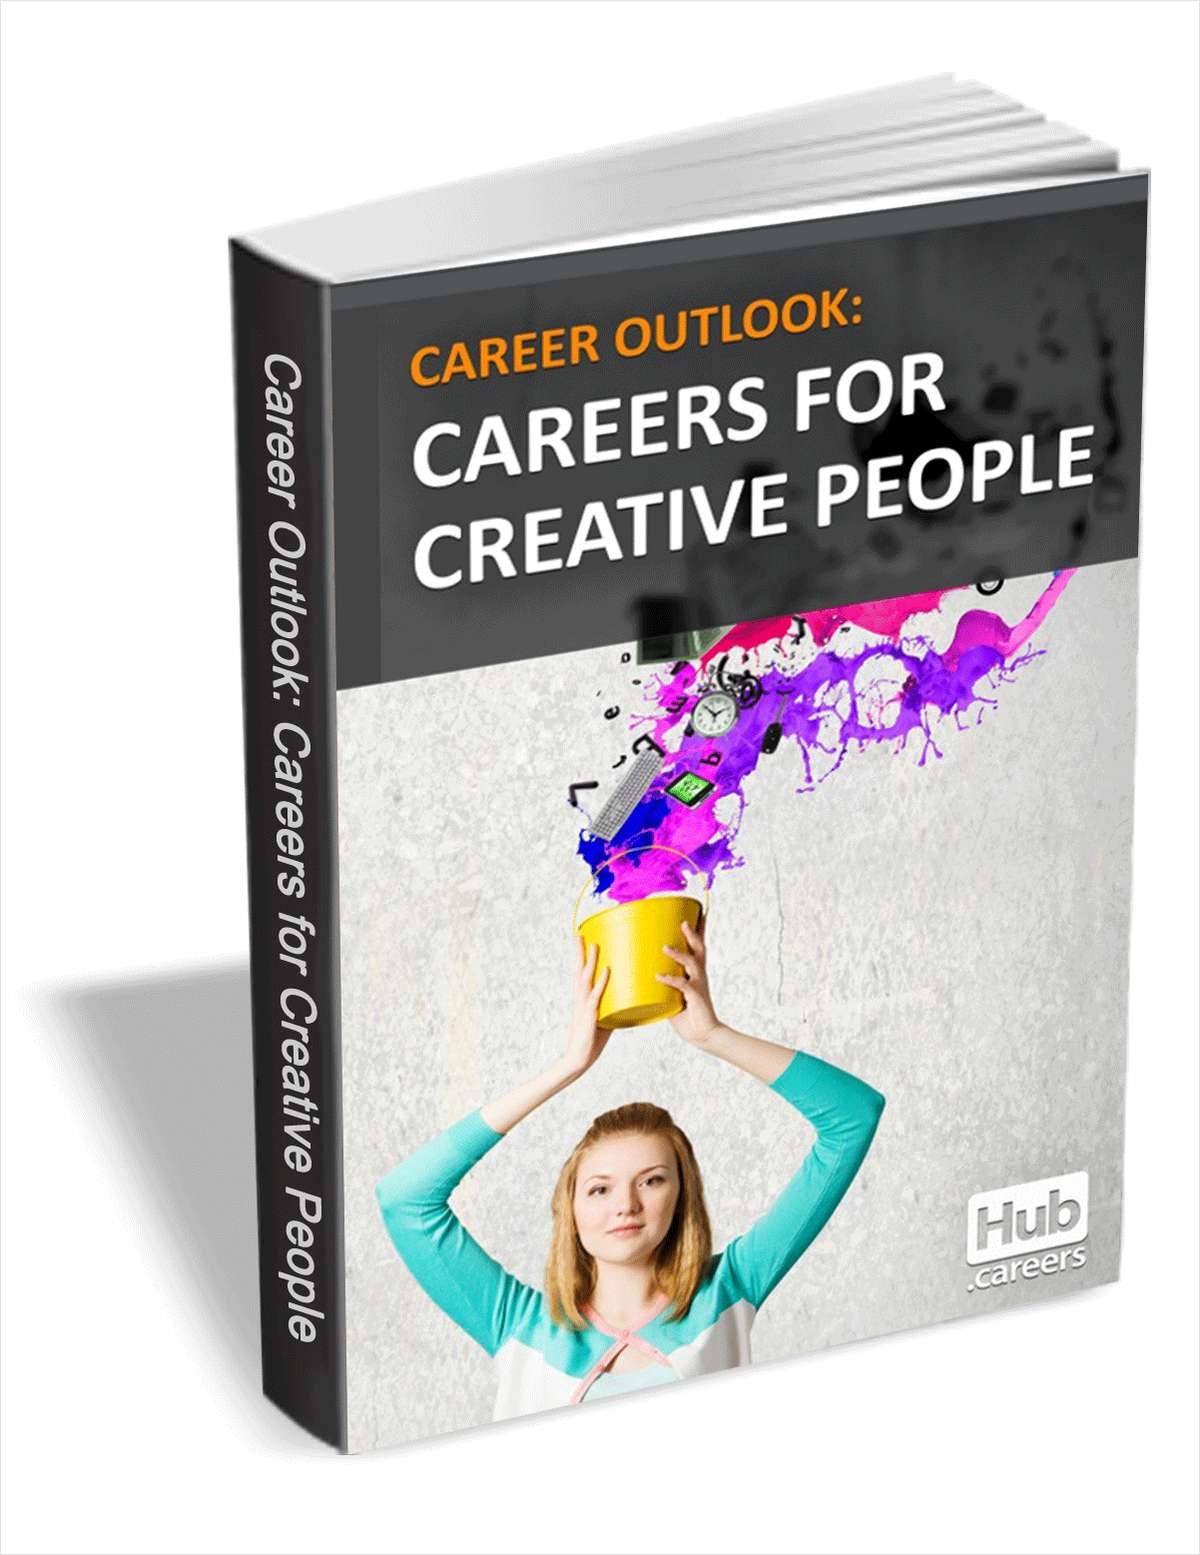 Careers for Creative People - Career Outlook